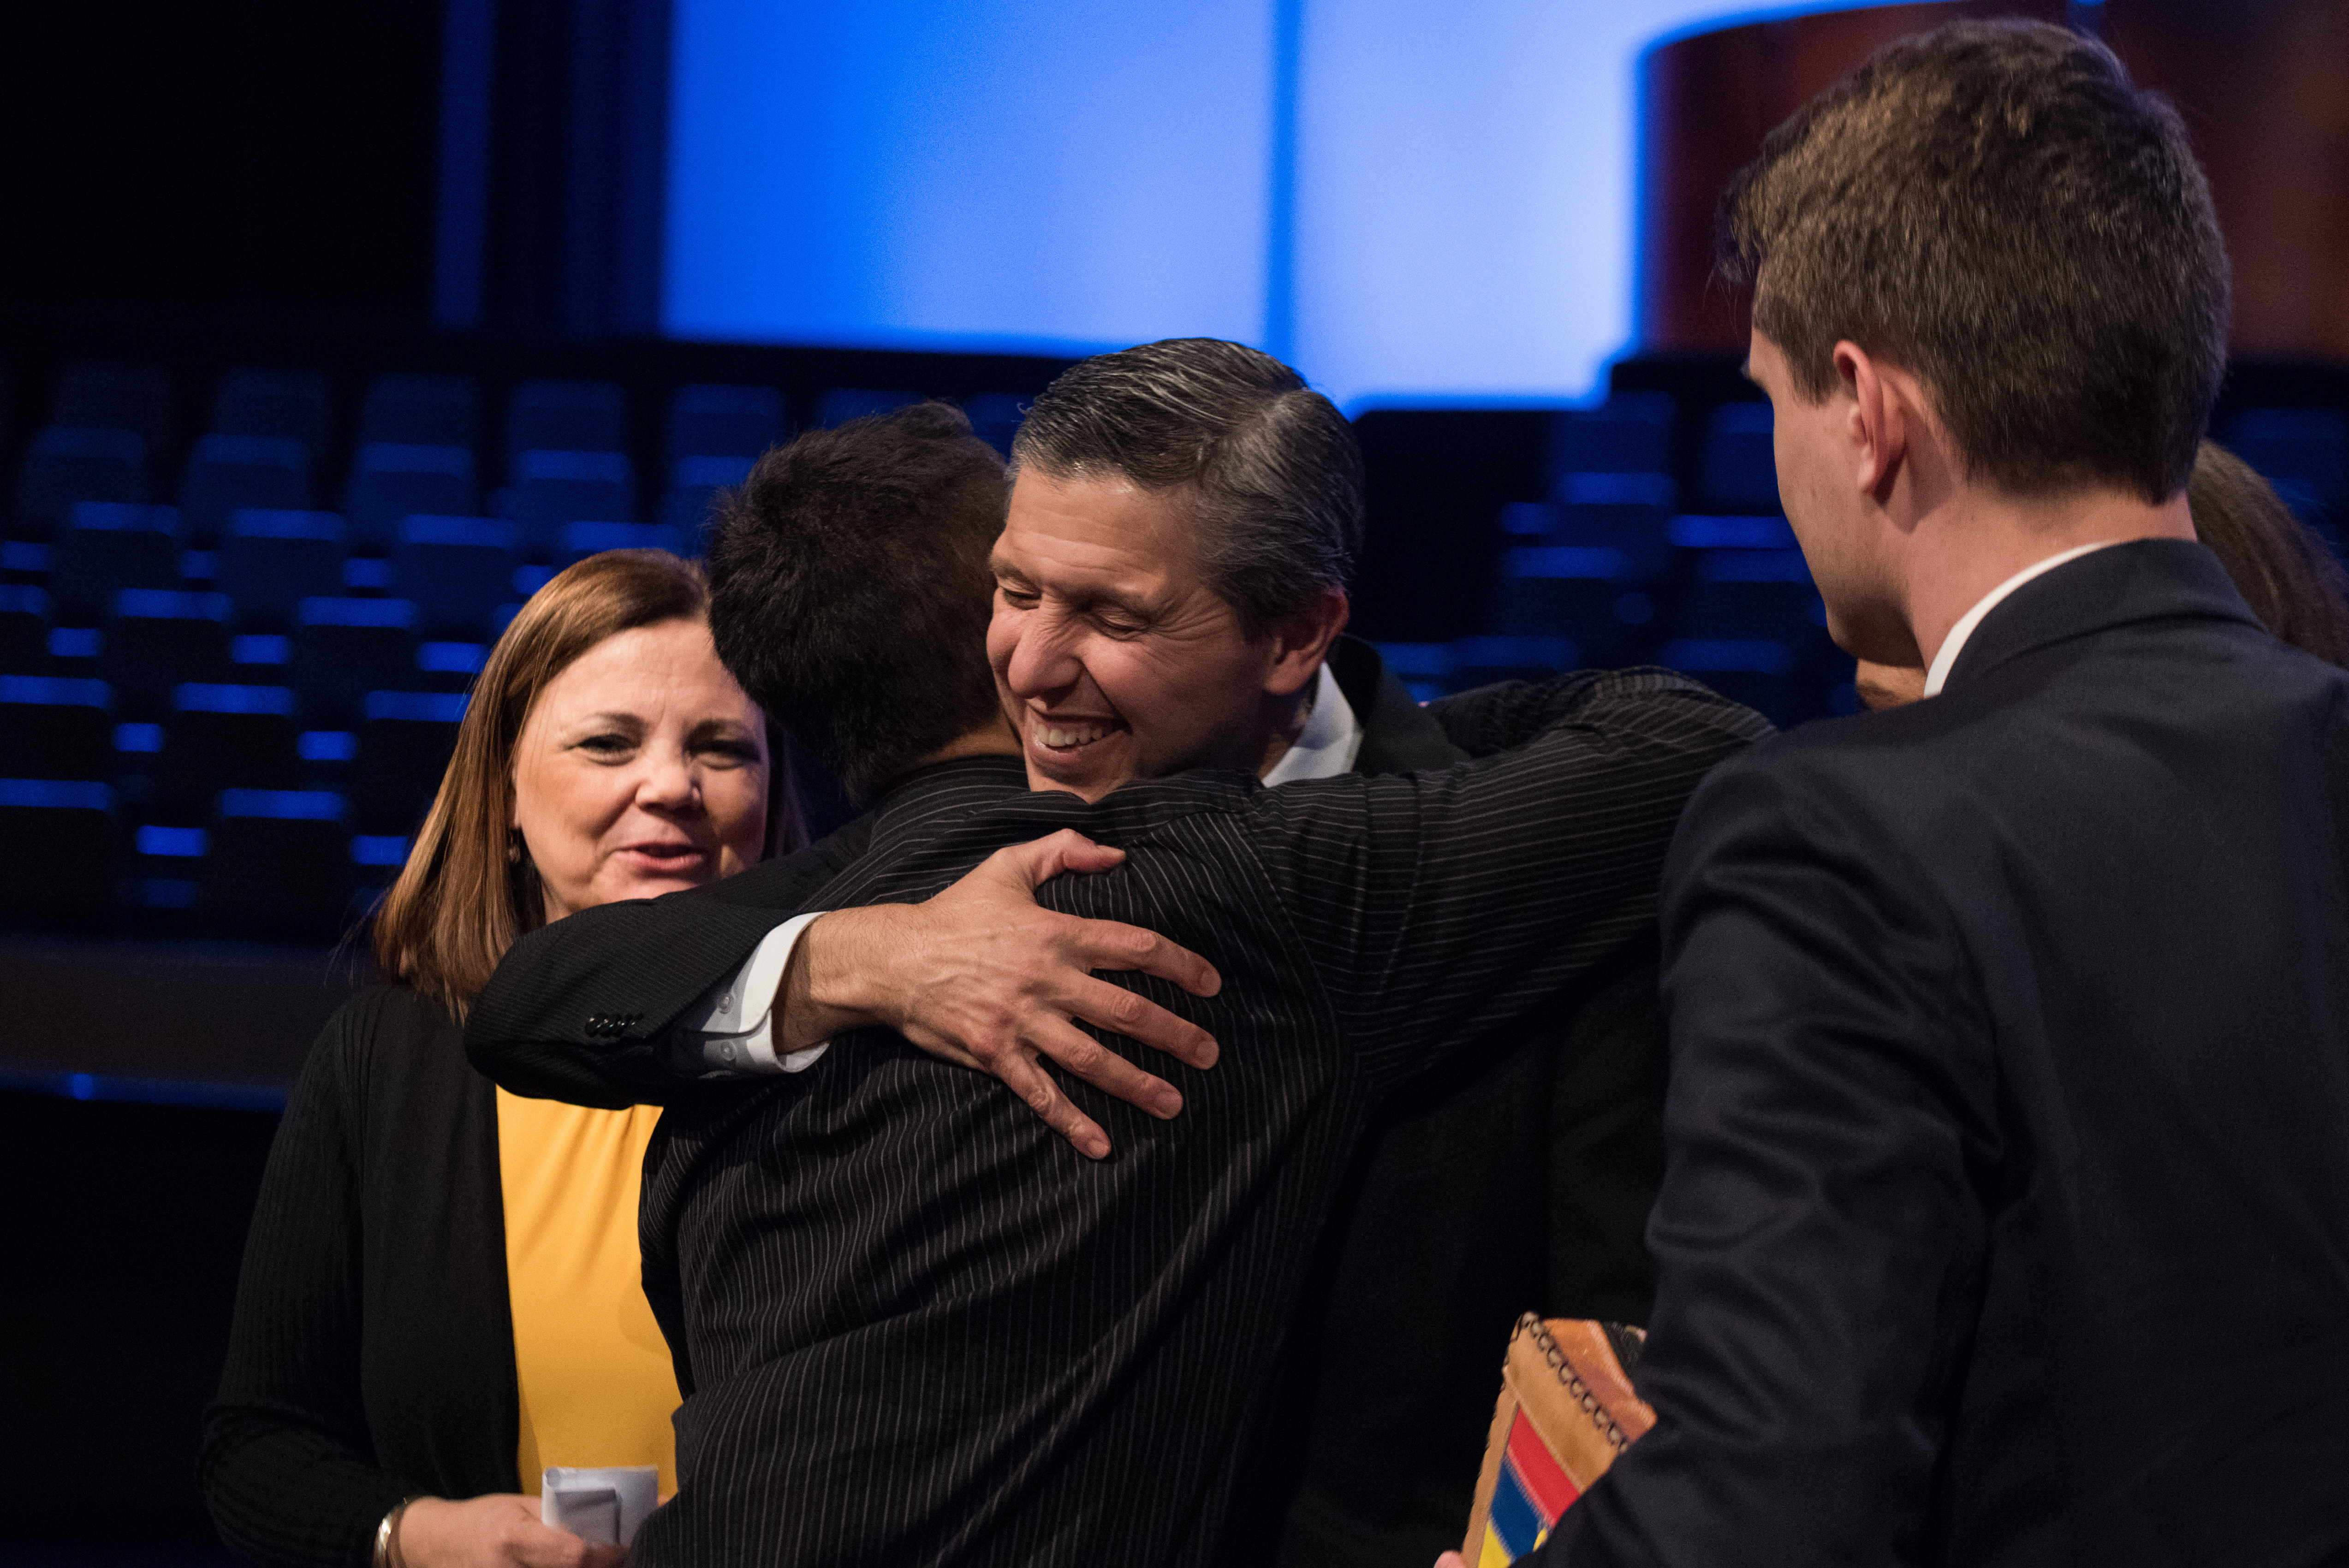 Elder Joaquin E. Costa and his wife, Sister Renee Costa, greet students following a devotional at BYU–Idaho on Feb. 26.